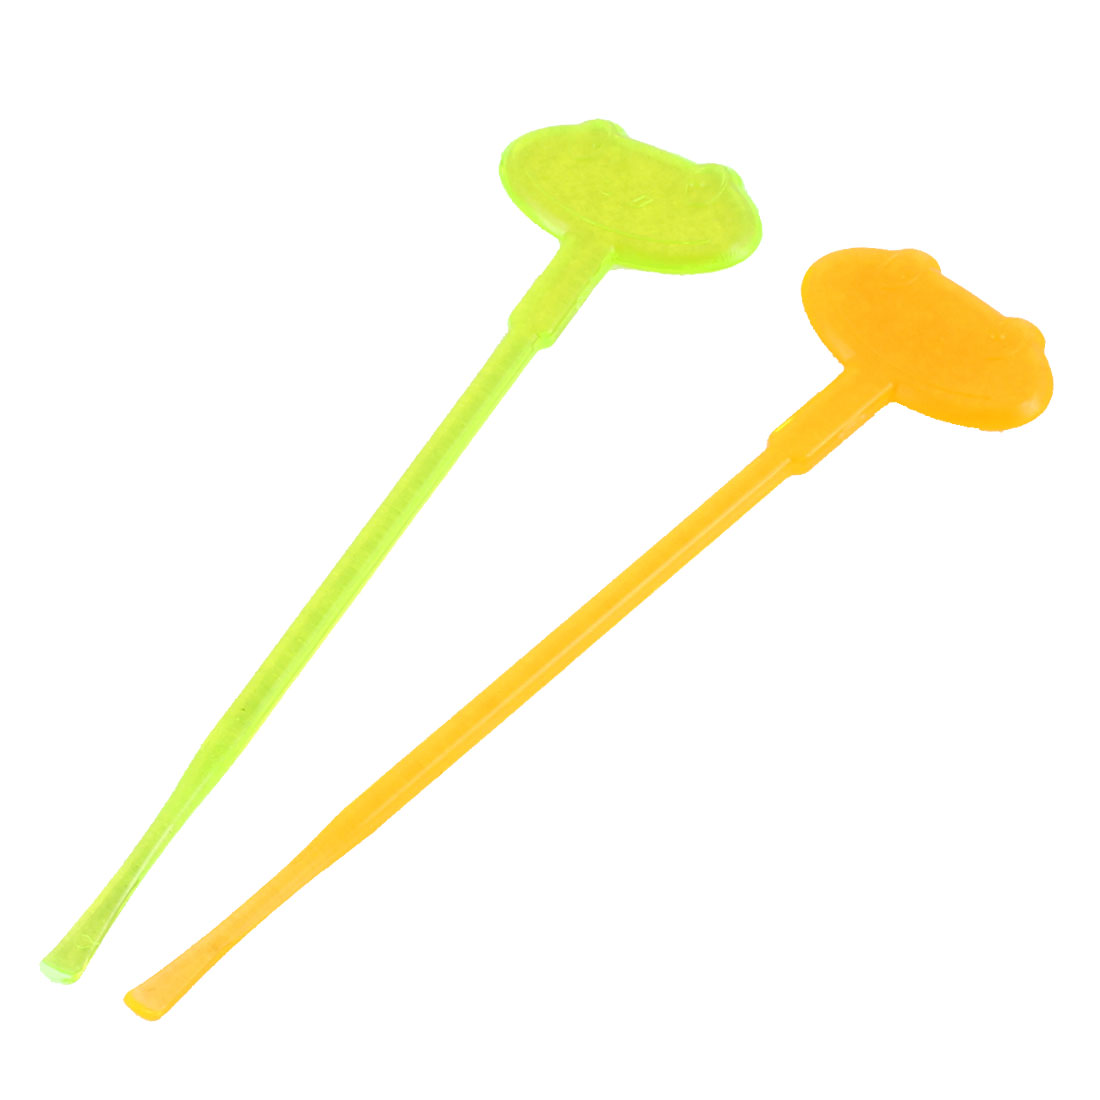 Plastic Earpick Ear Wax Remover Cleaner Beauty Tool Green Orange 2pcs